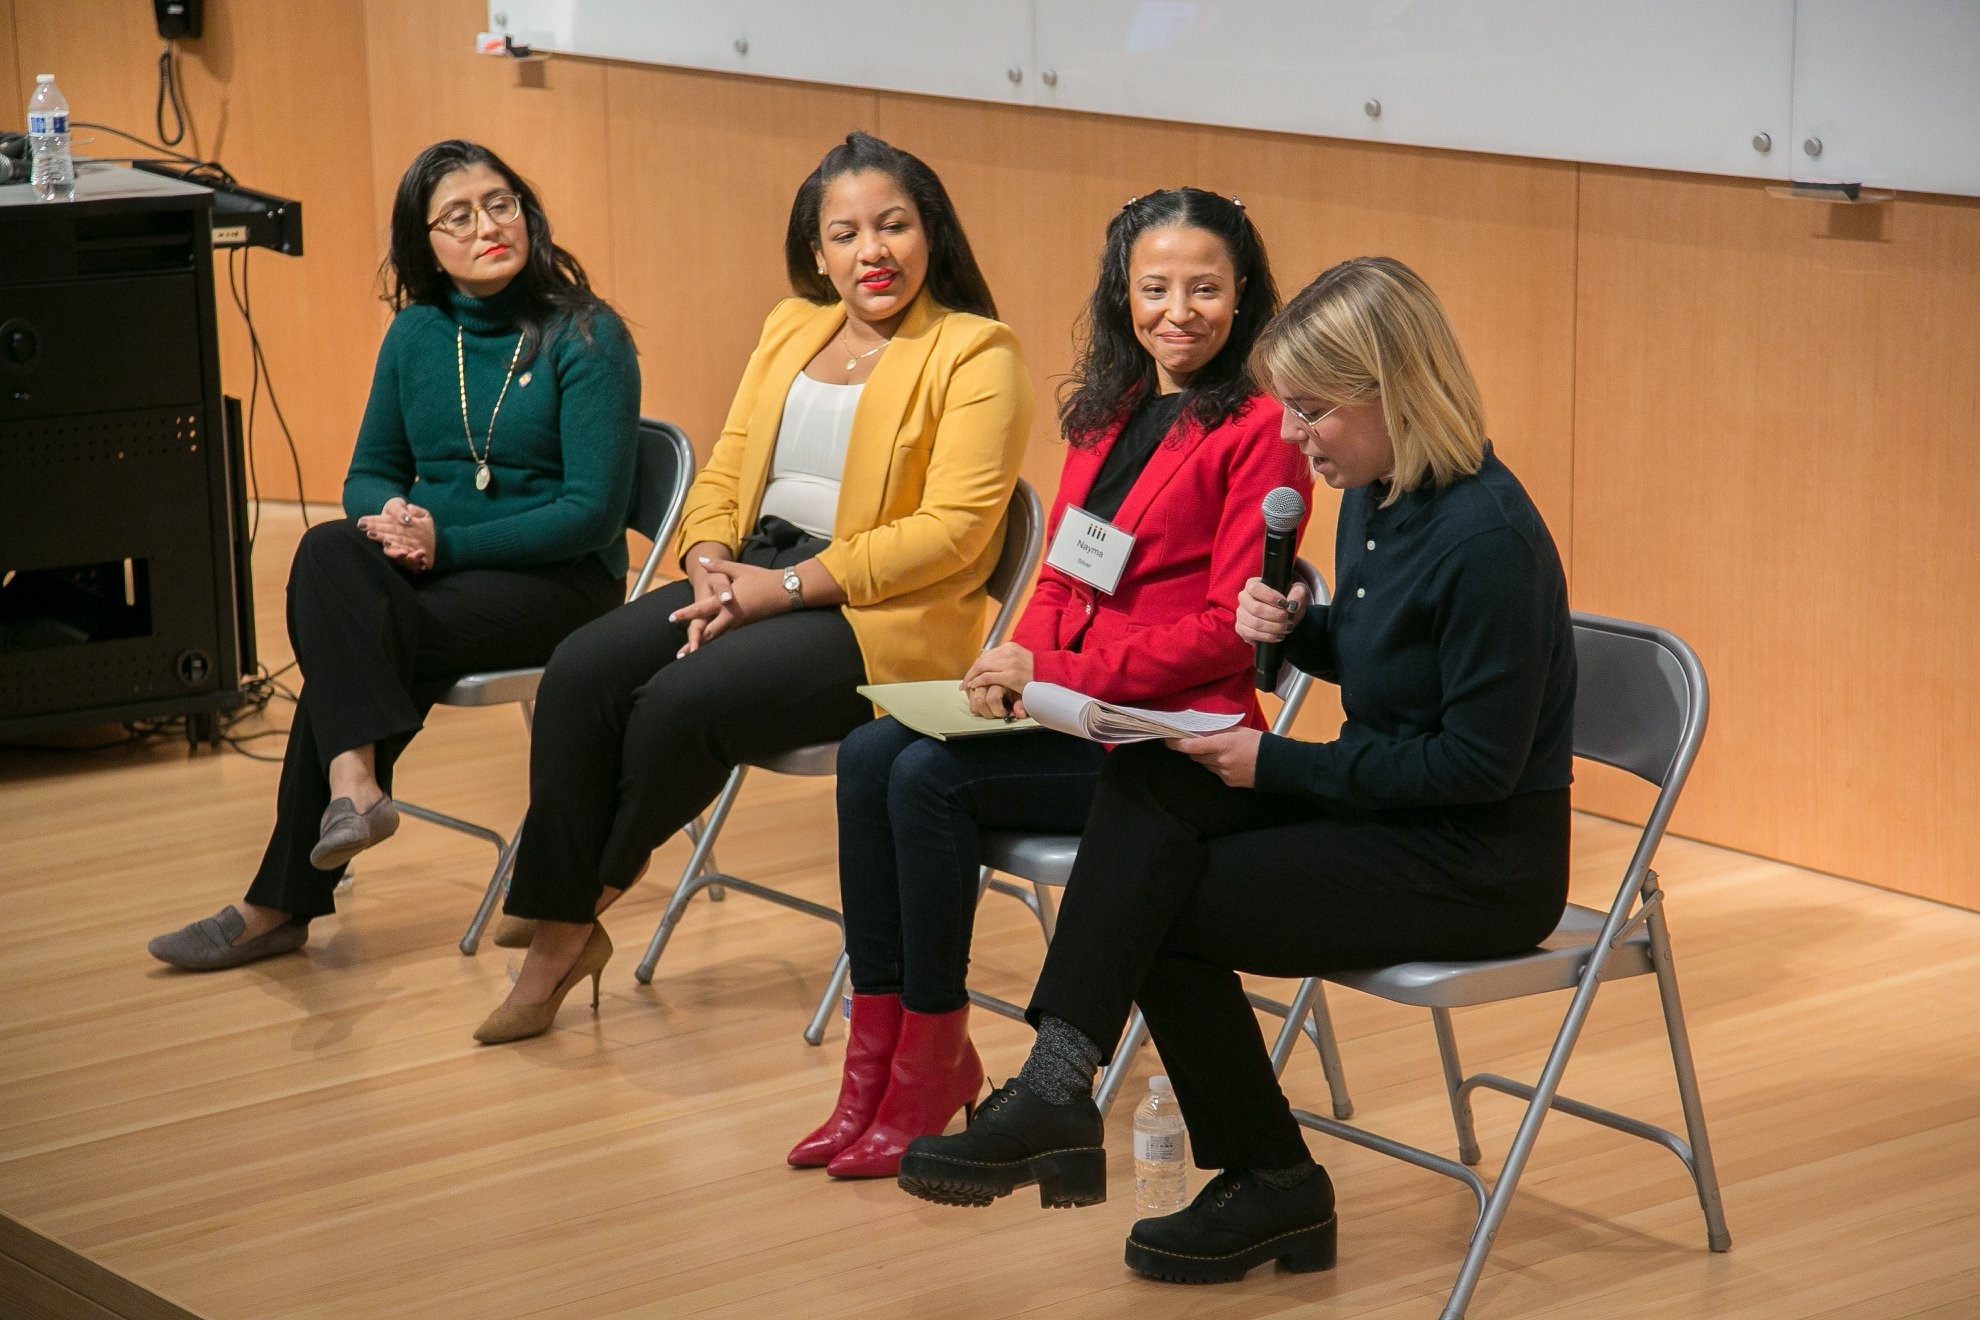 Nayma Silver-Matos speaking at IGNITE's Young Women Run conference in Brooklyn, New York